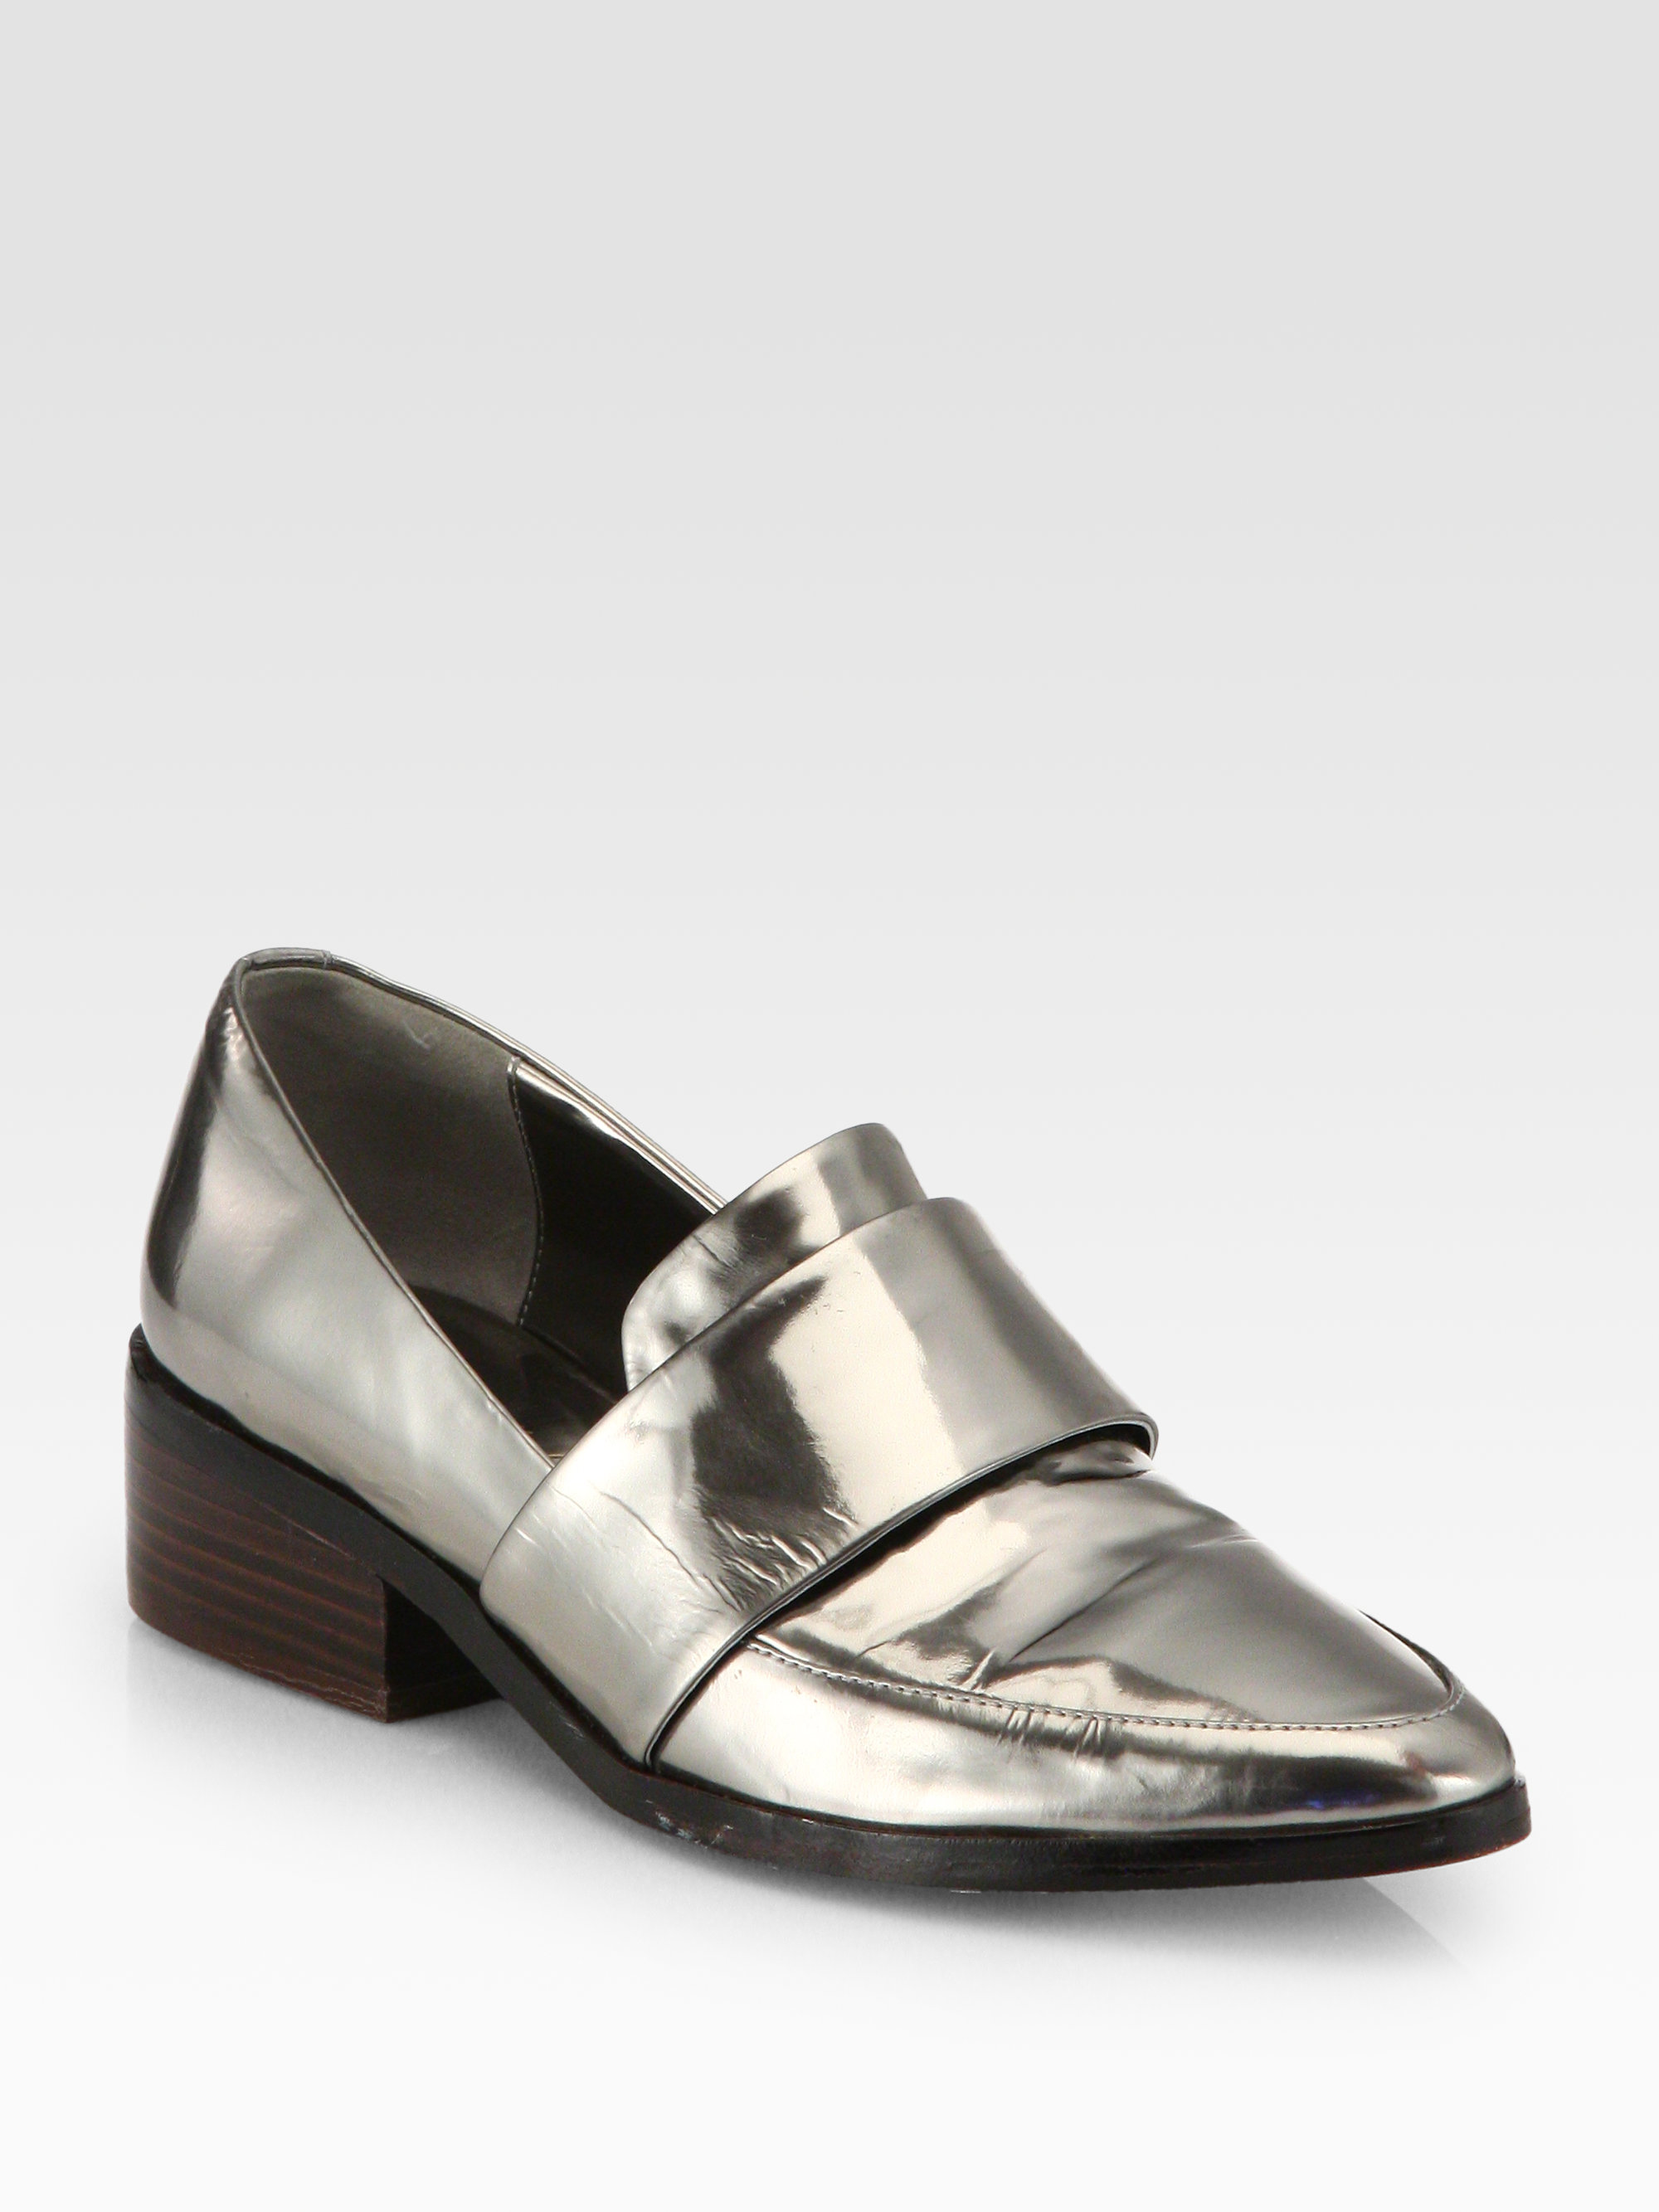 FOOTWEAR - Loafers 3.1 Phillip Lim x7SdtfB